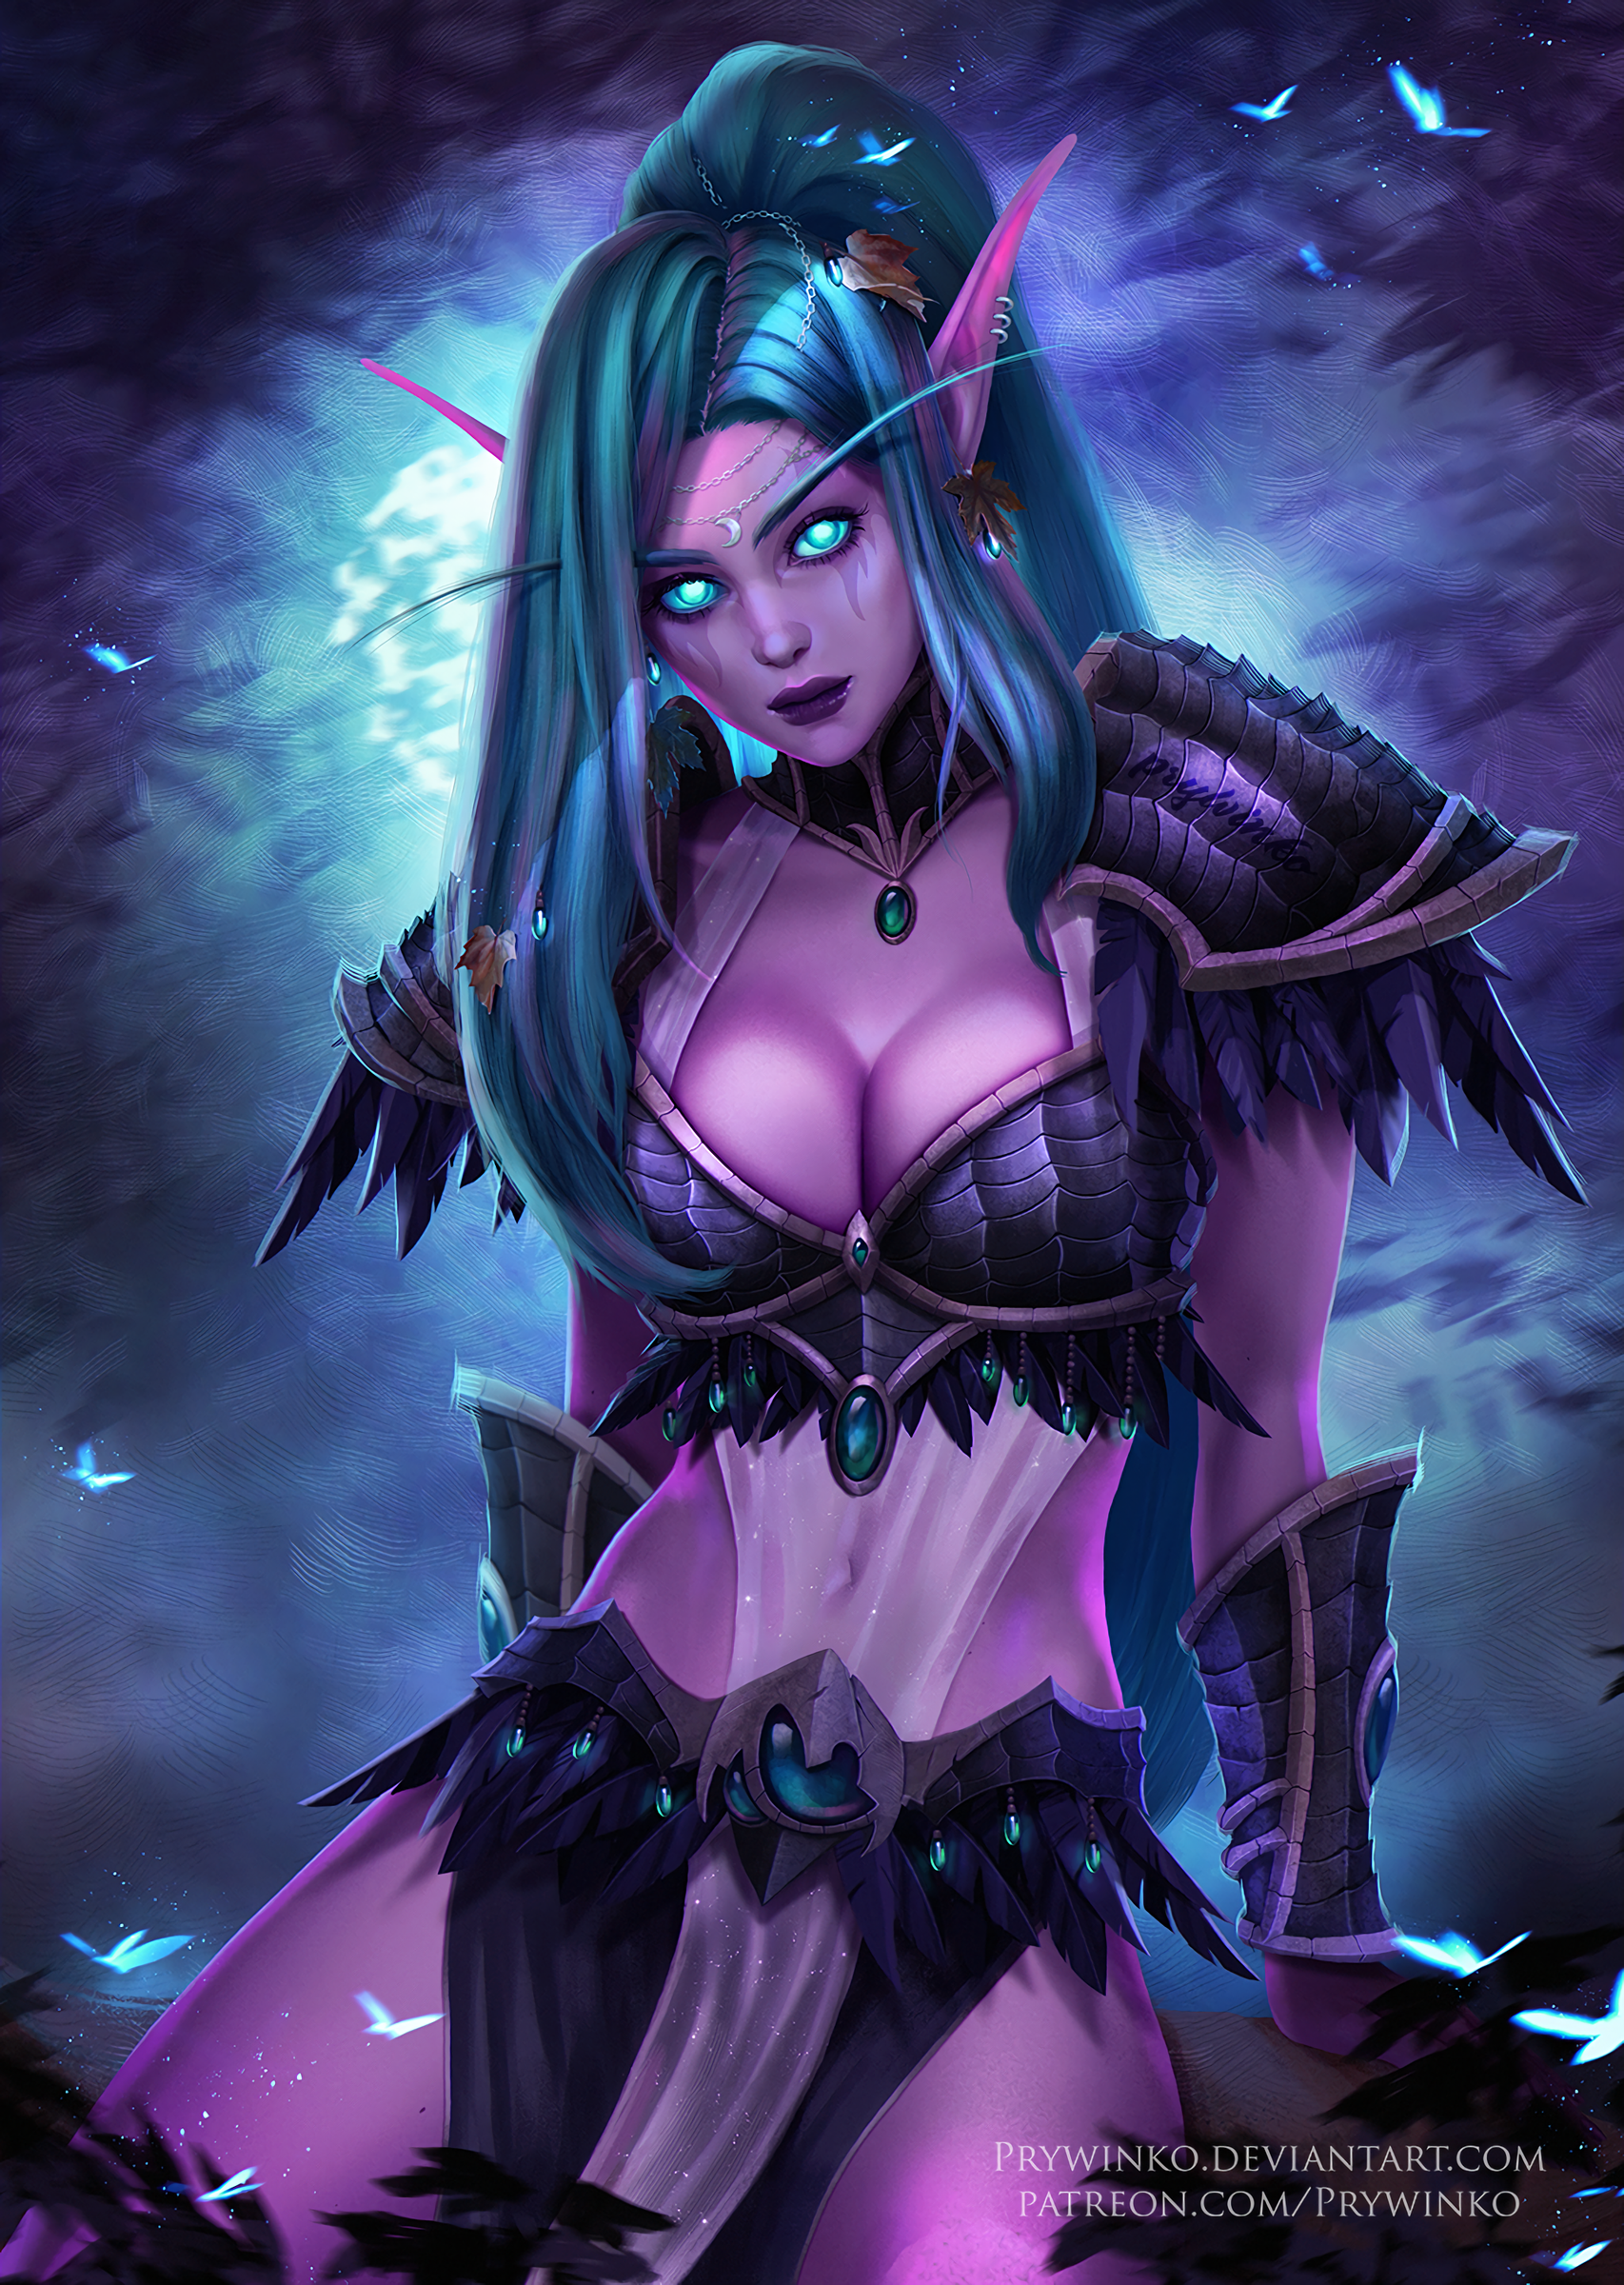 General 1706x2400 digital art artwork portrait display women looking at viewer thighs cleavage long hair video games blue eyes Warcraft Warcraft III World of Warcraft belly elven pointed ears blue hair Night Elves